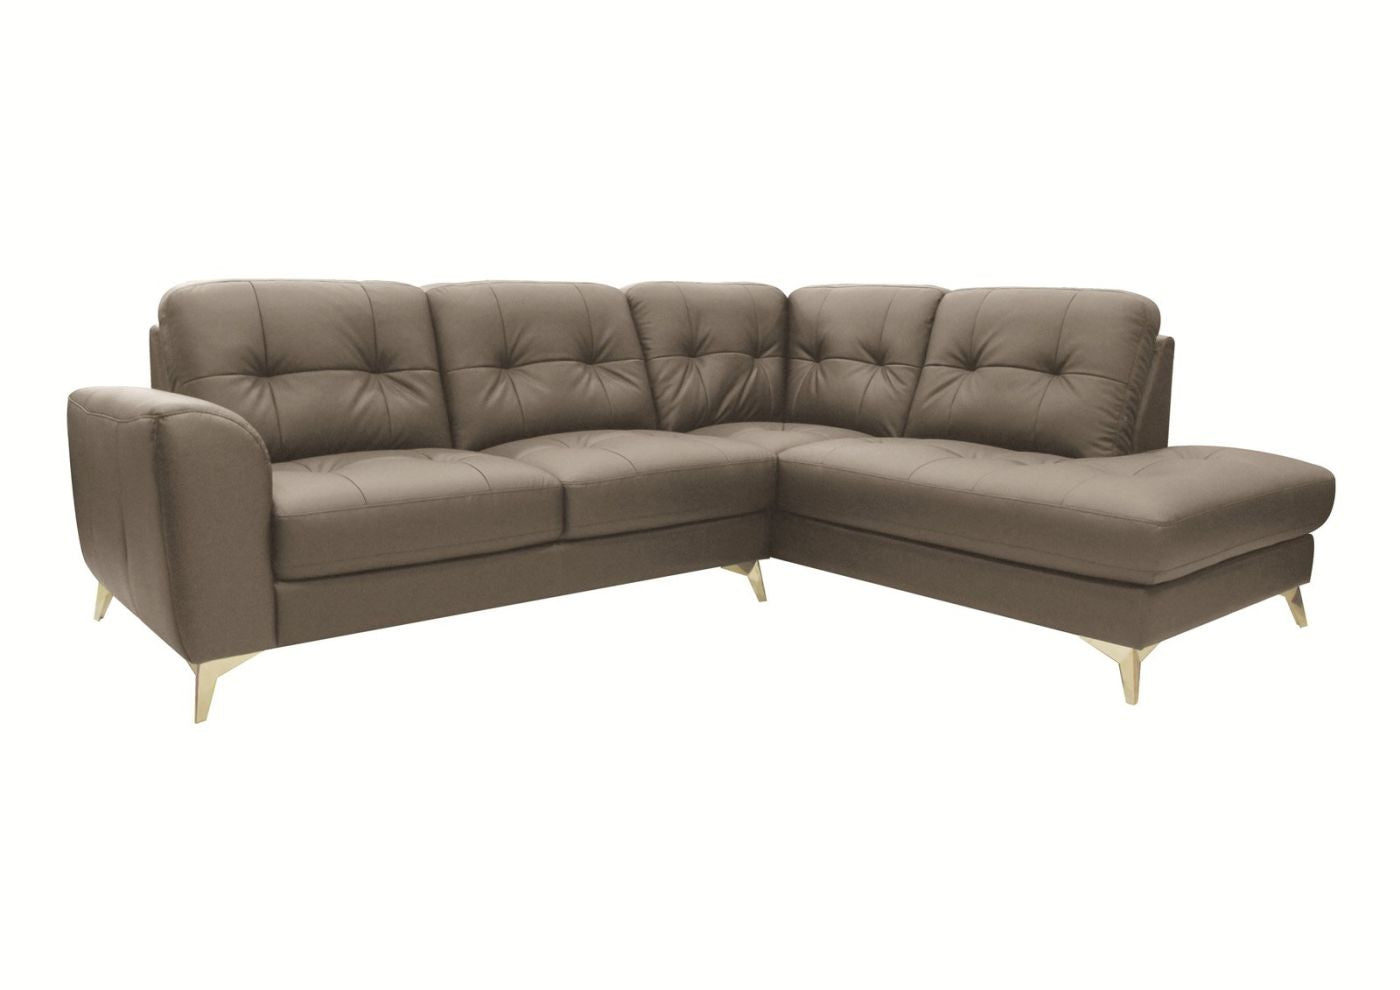 Ordinaire Cedric Leather Sectional Right Grey Sofa